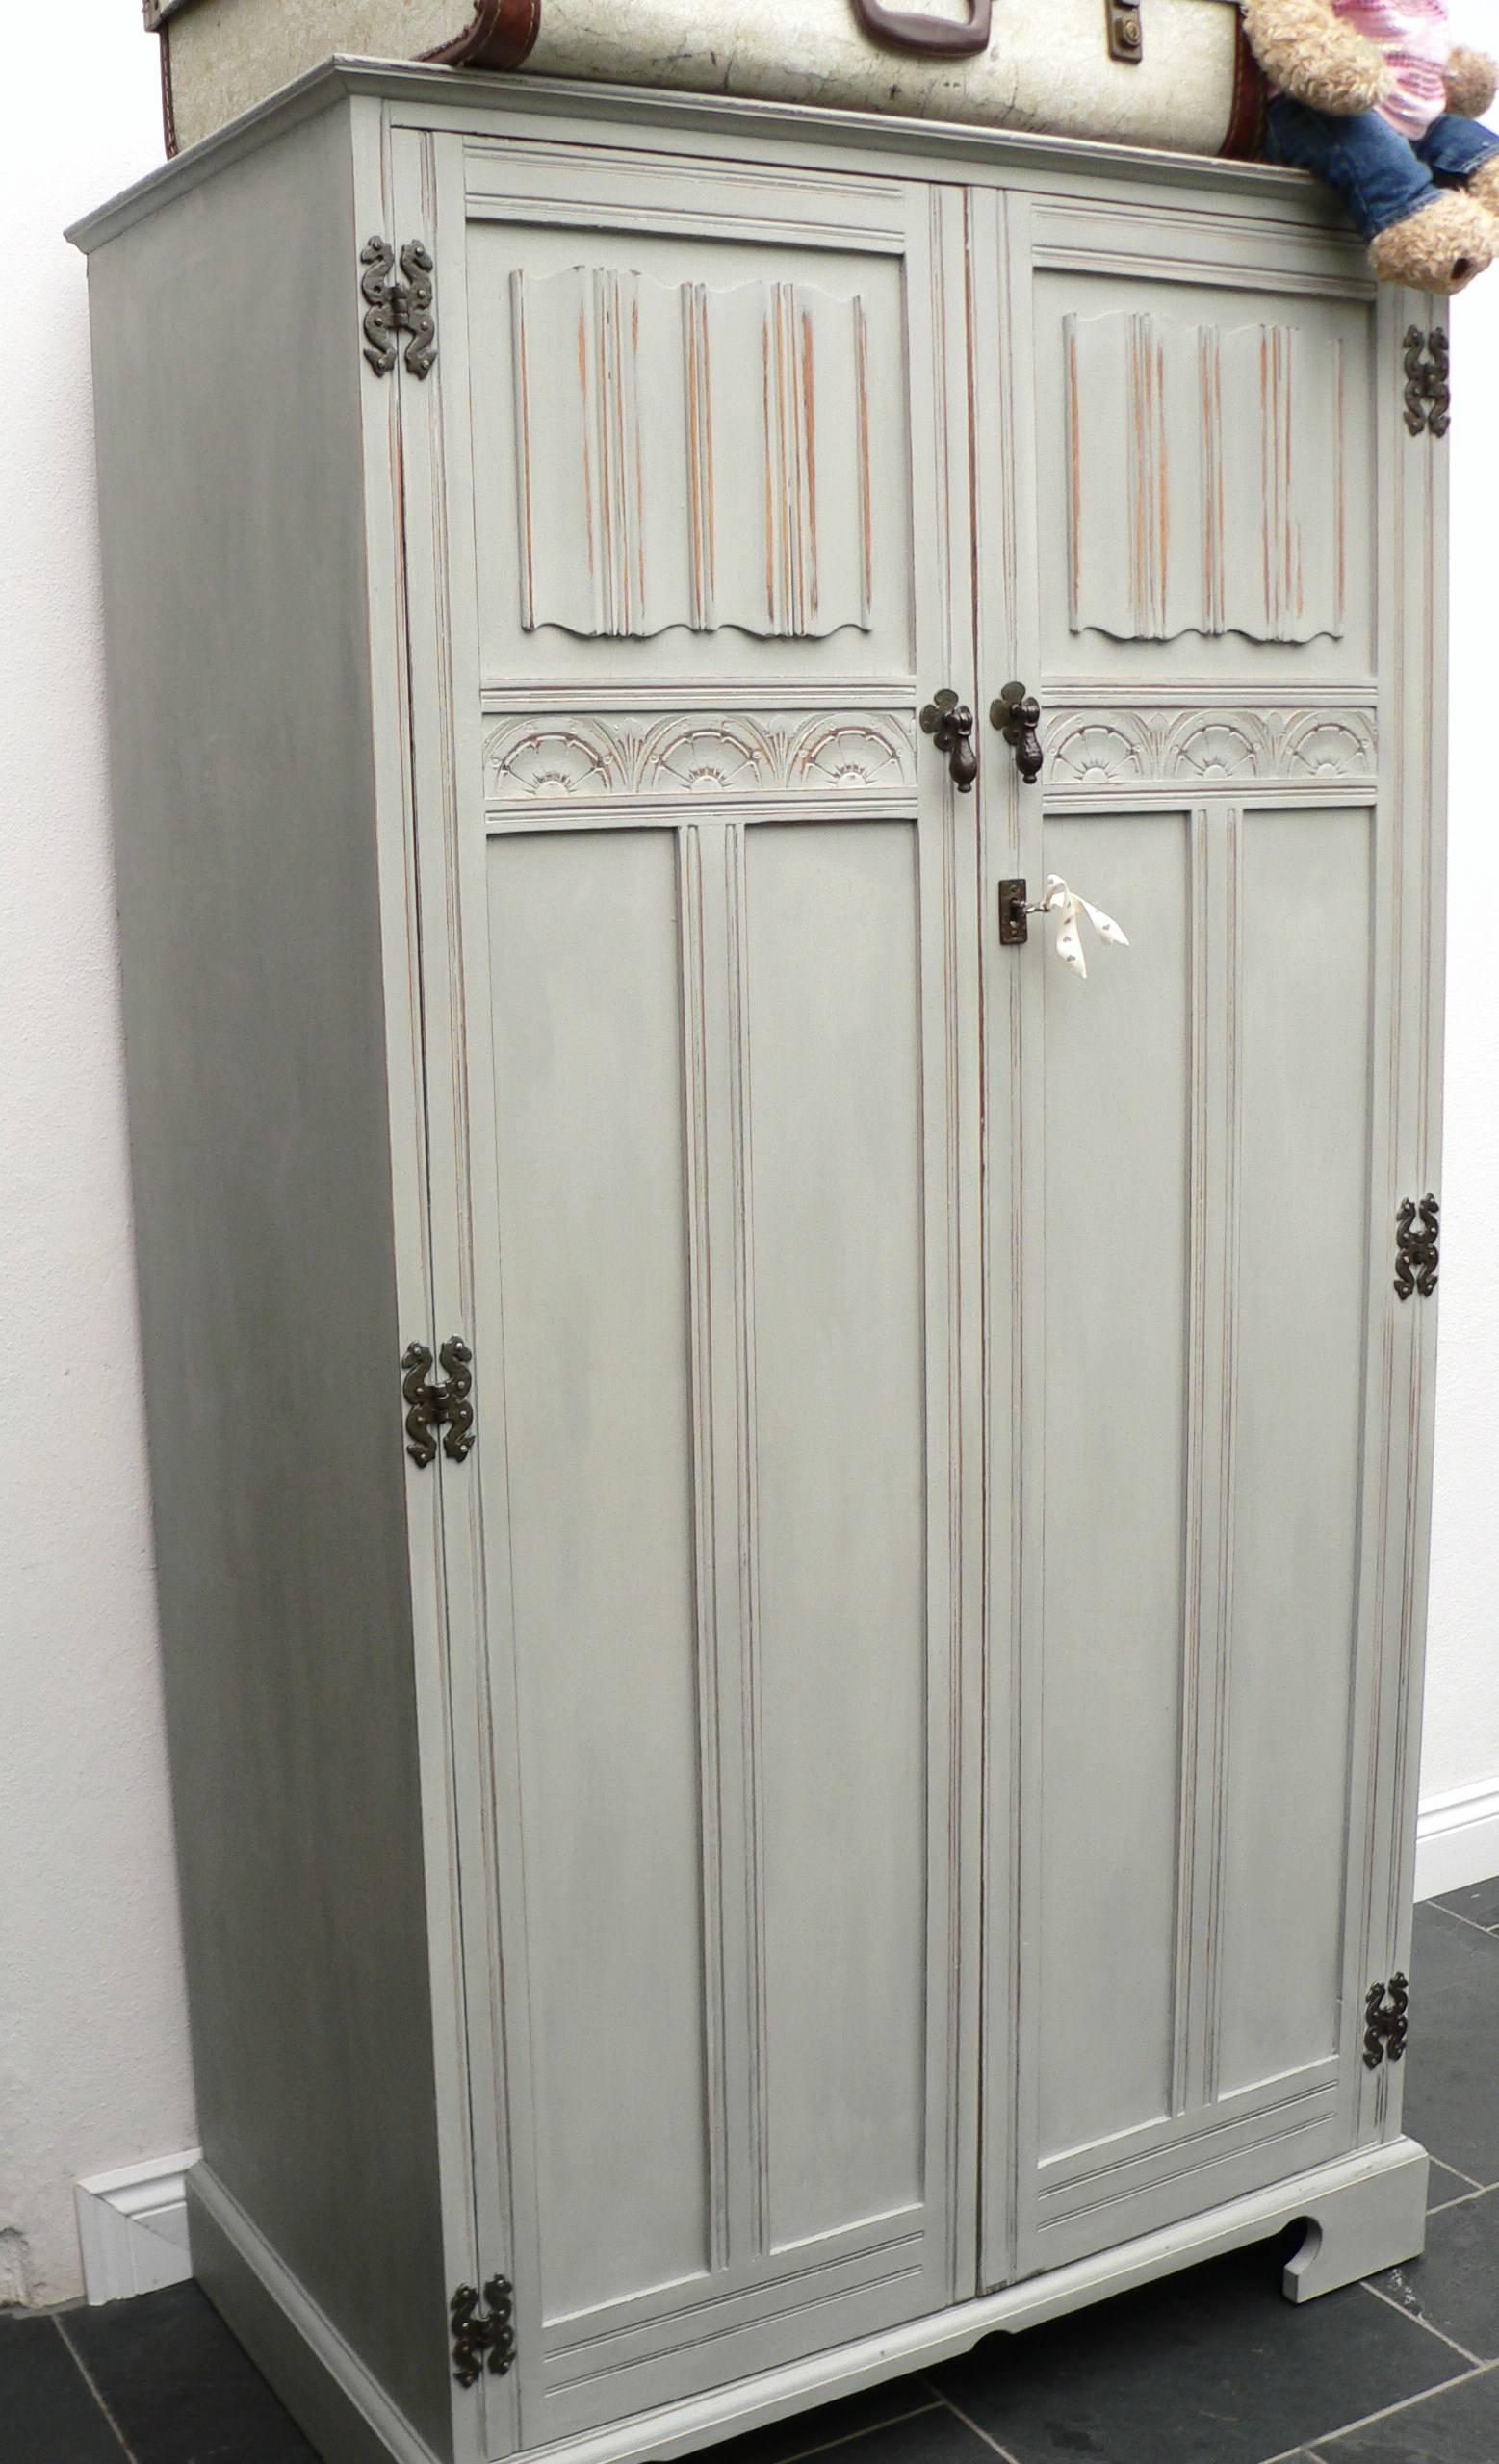 Beautiful Wardrobe – £249.00 (Wd-2) | Pea {Style} pertaining to Vintage Style Wardrobes (Image 3 of 15)